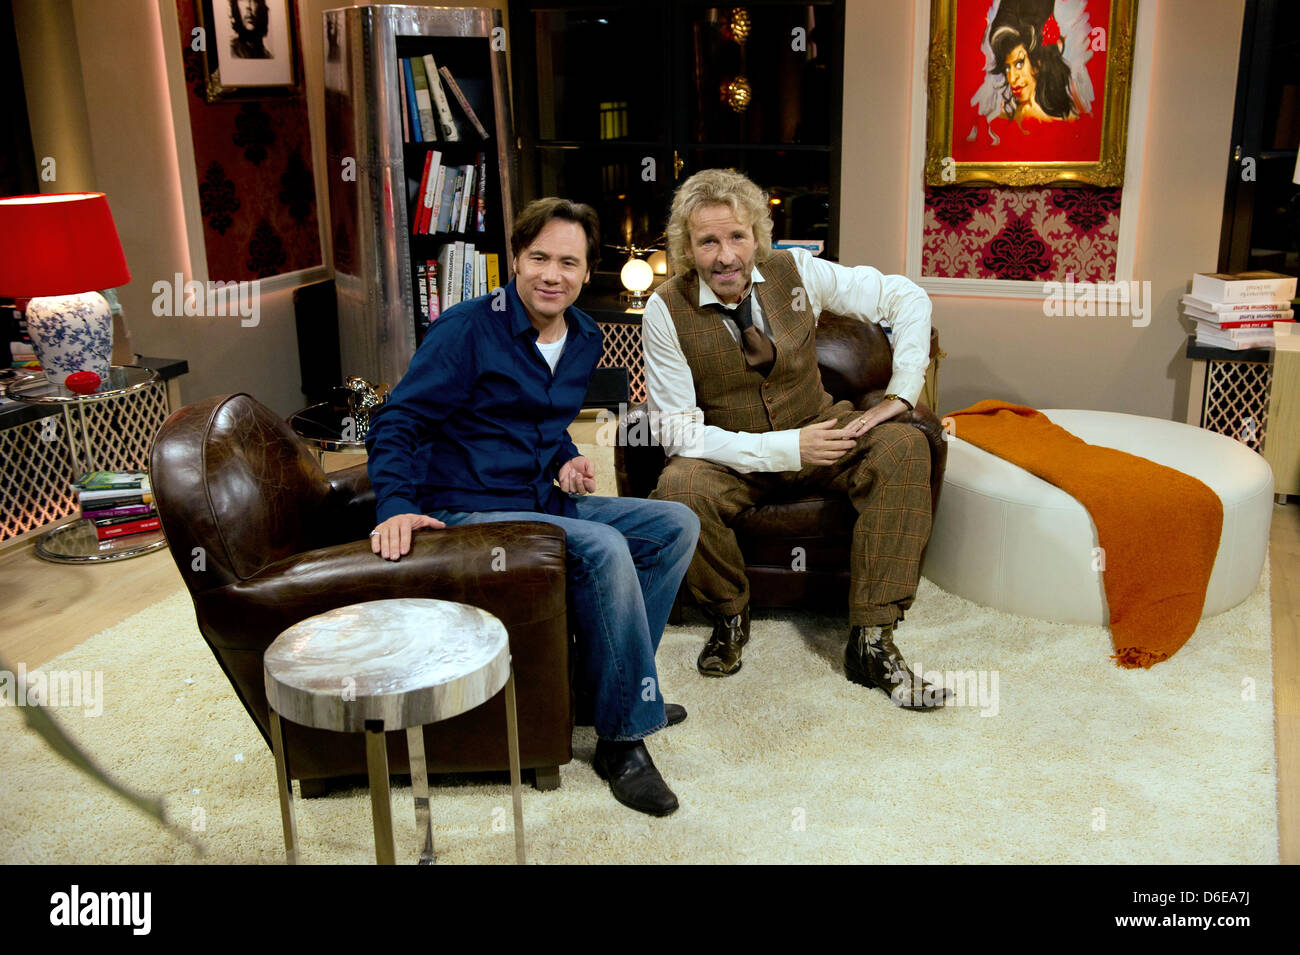 Pose Tv Dising - Tv Presenter Thomas Gottschalk And Director Michael Bully Herbig [mjhdah]http://c8.alamy.com/comp/KJ6B1X/xavier-durringer-joey-fare-winner-best-tv-movie-mini-series-pose-on-KJ6B1X.jpg